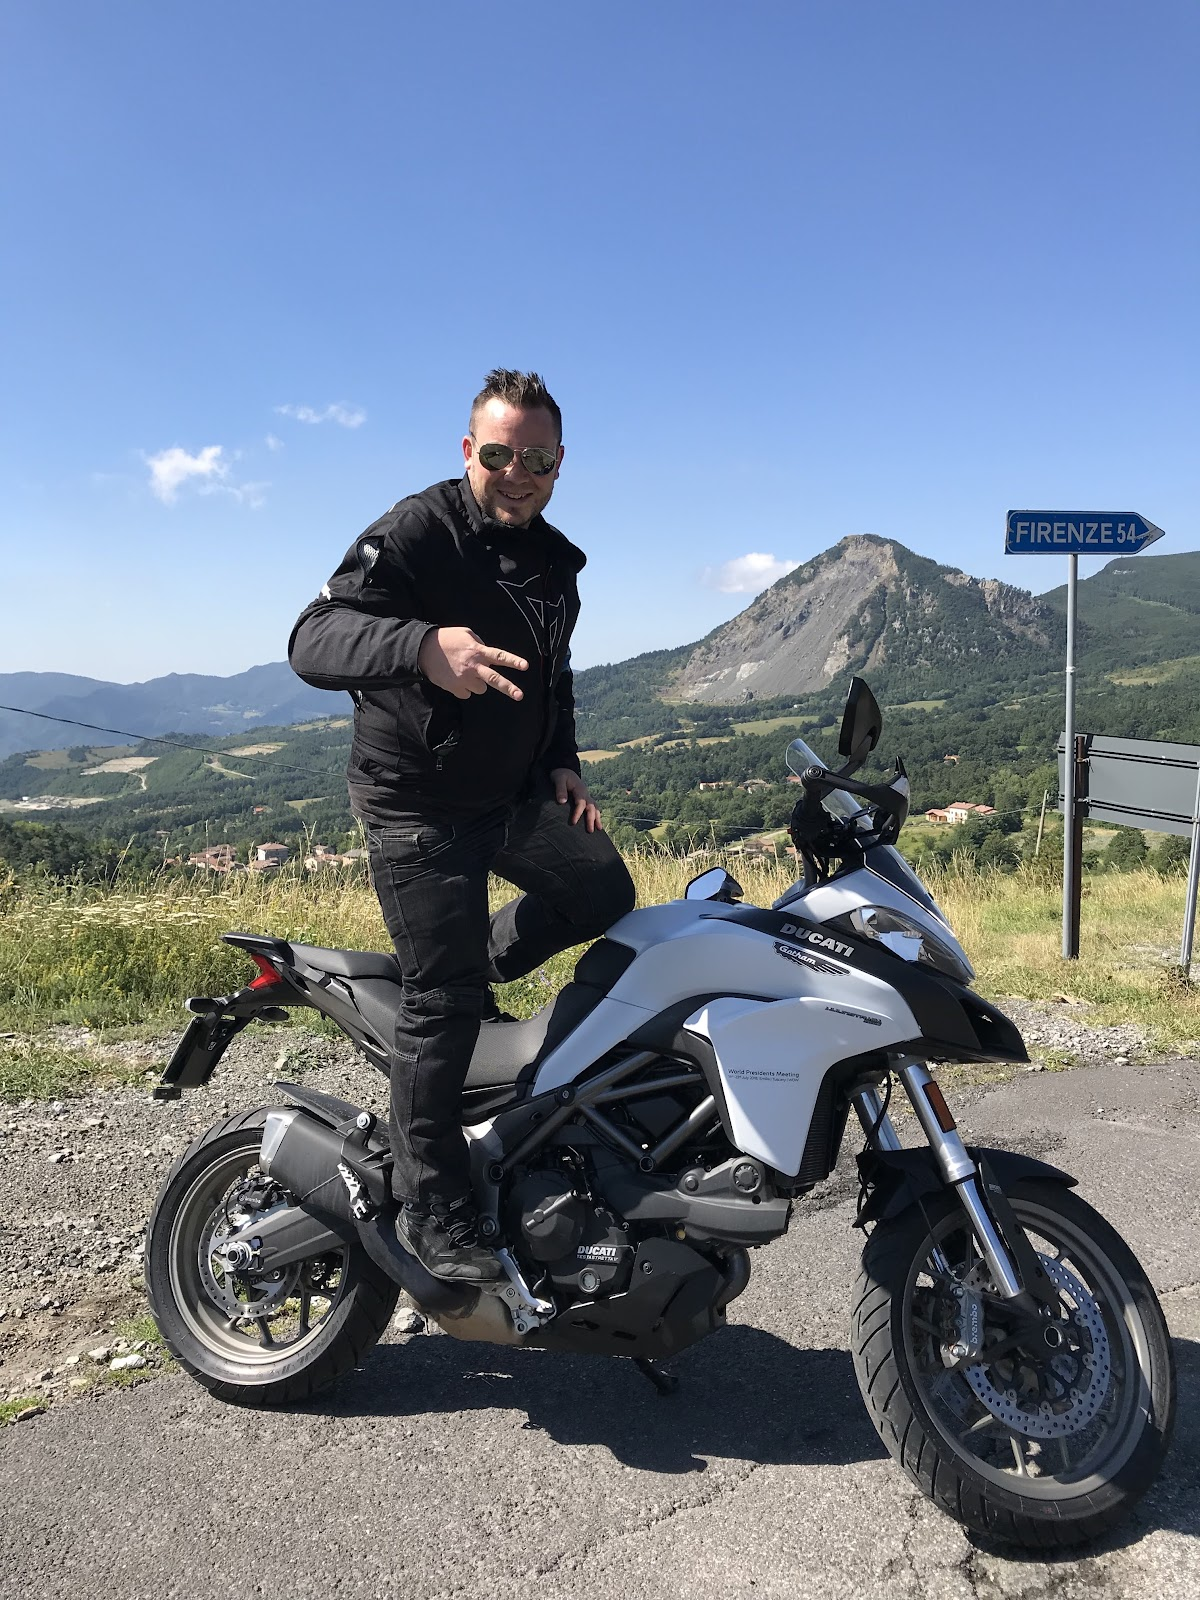 #WPMNeverEnds Tigh Loughhead of Gotham Ducati in Firenzuola Italy at the World Presidents Meeting 2018